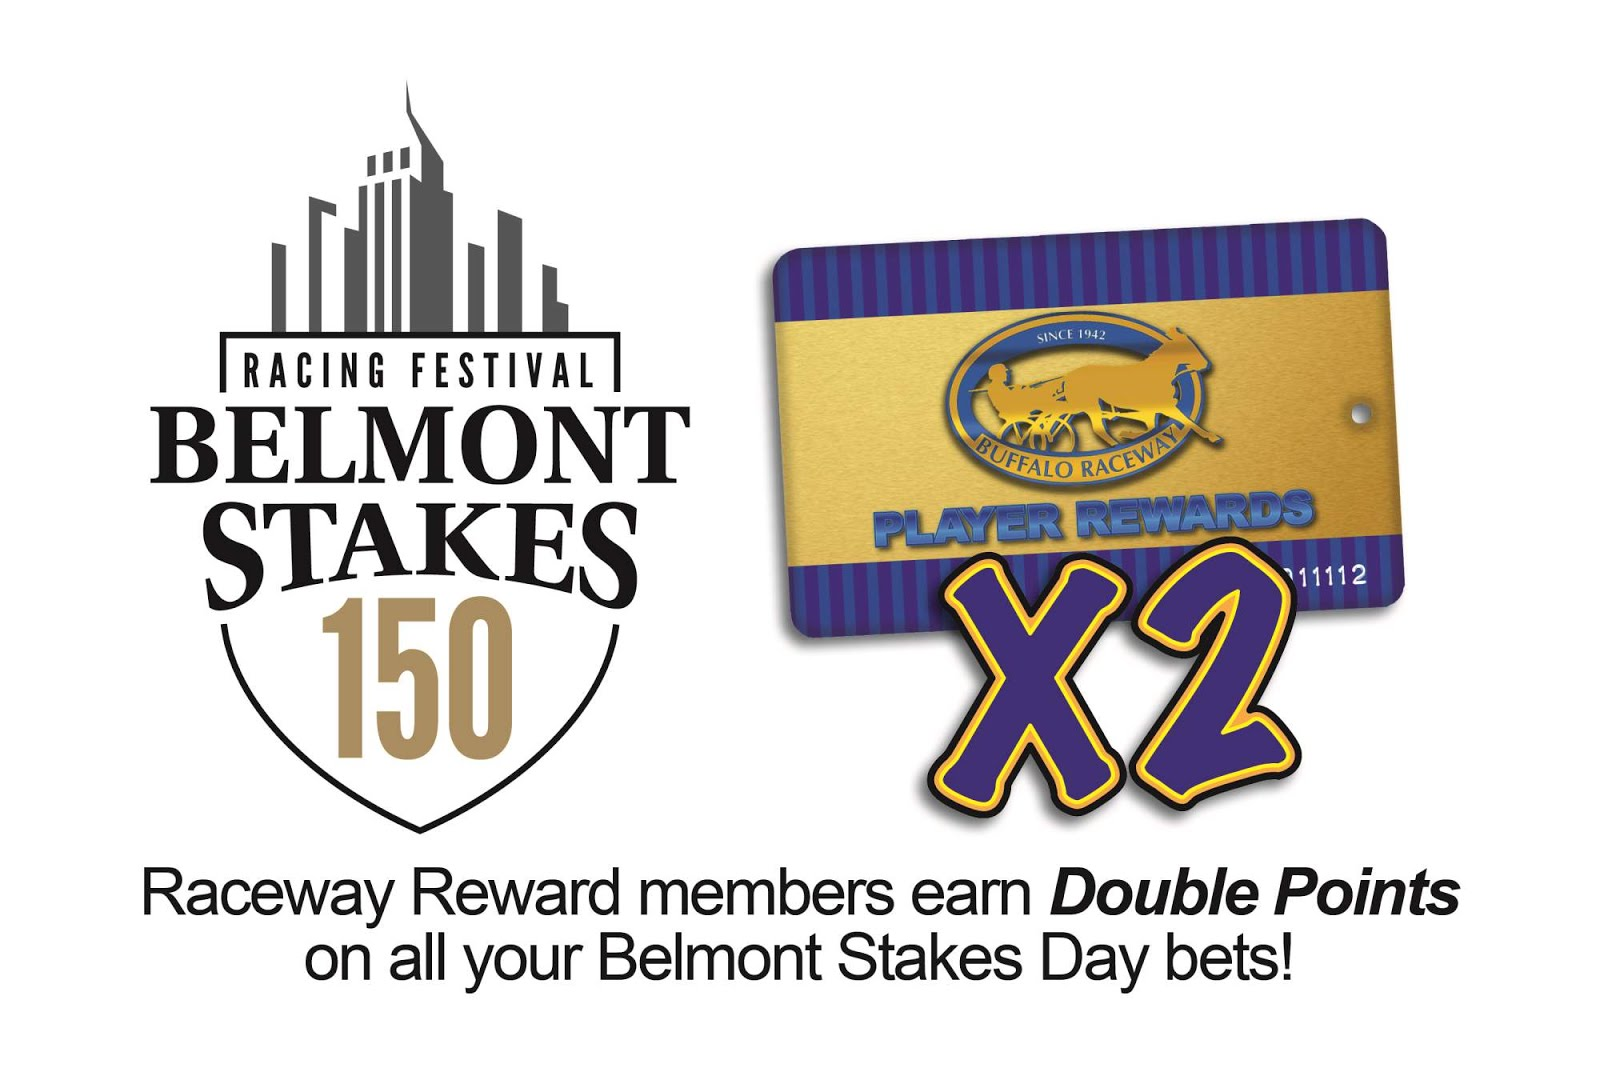 The Belmont Stake is June 9th